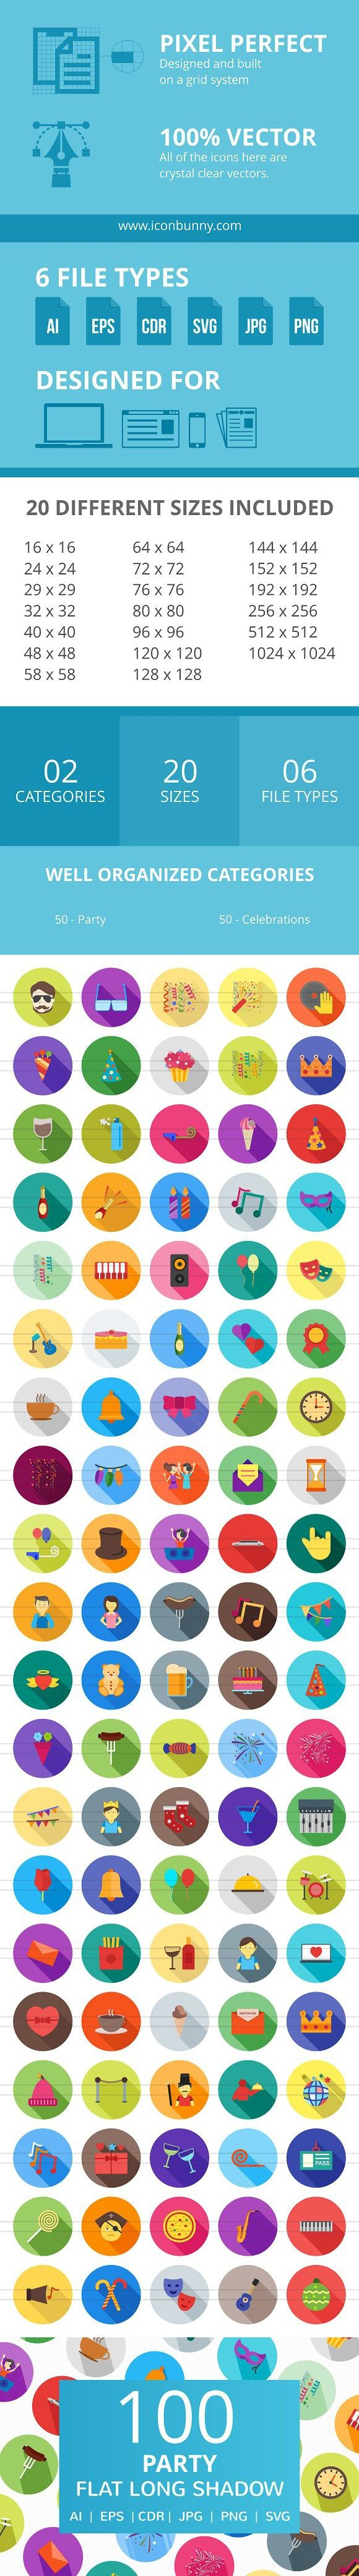 100 Party Flat Long Shadow Icons Flat icon, Bakery icon